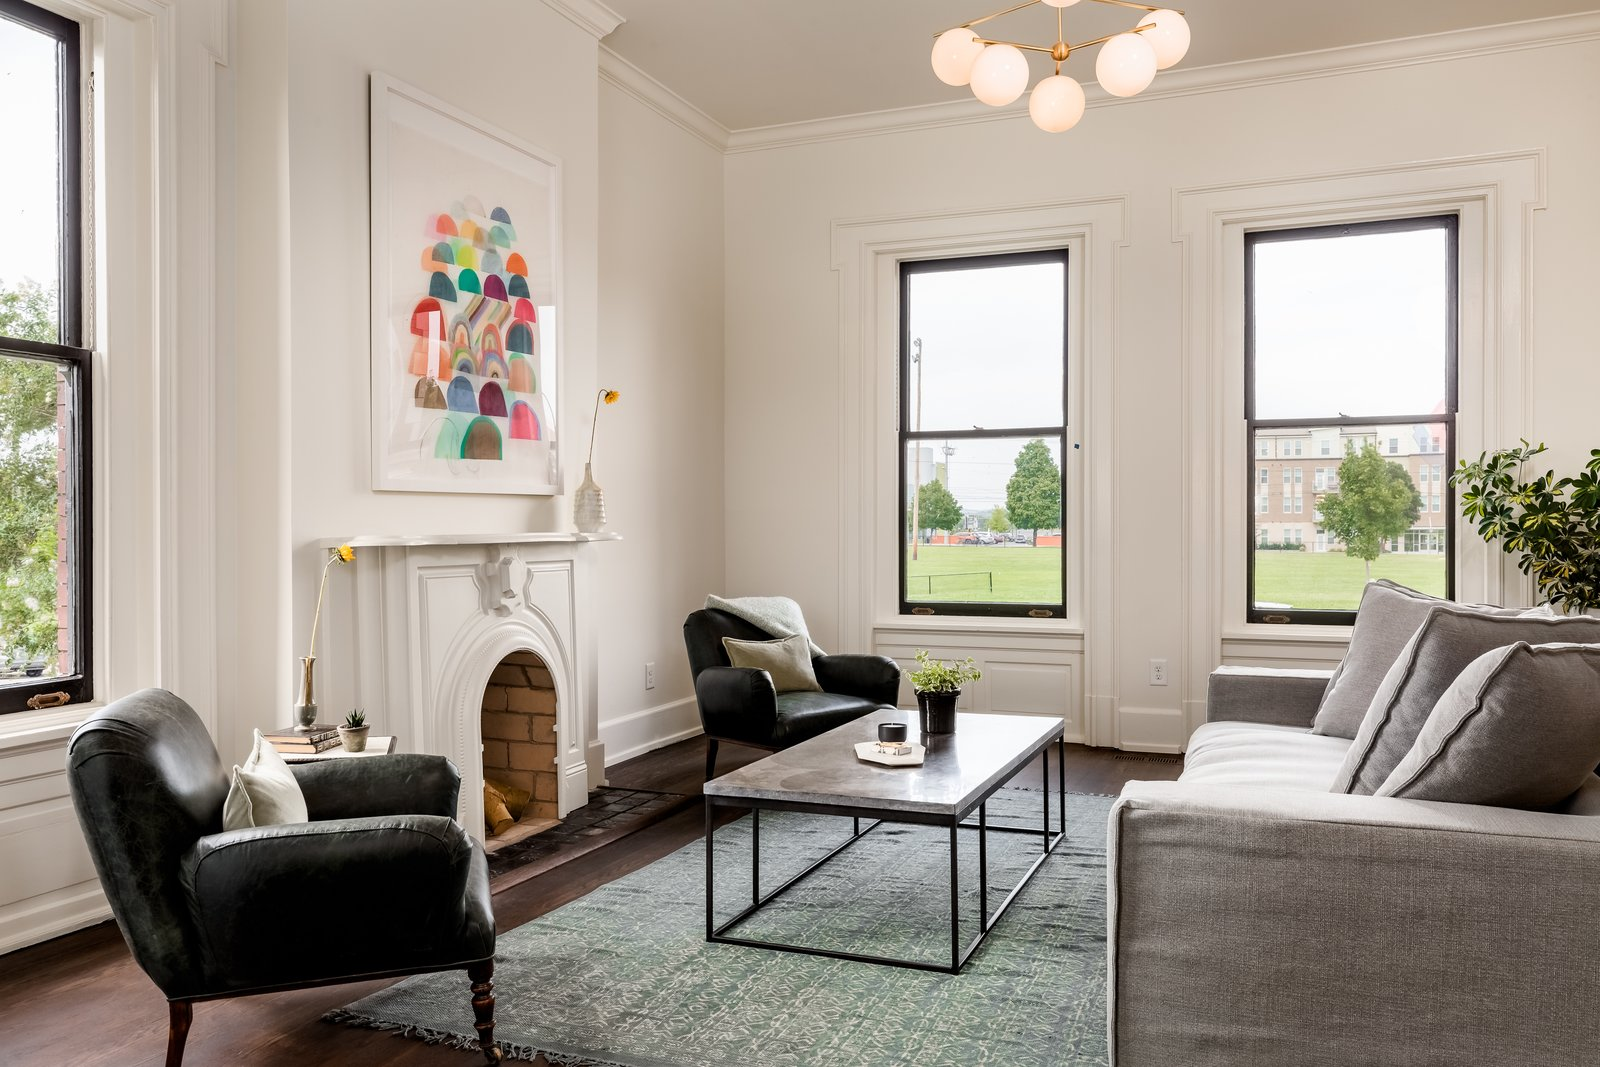 Modern Interiors Shine Behind the 19th-Century Facade of This Nashville Home, Now Asking $2.1M - Photo 3 of 14